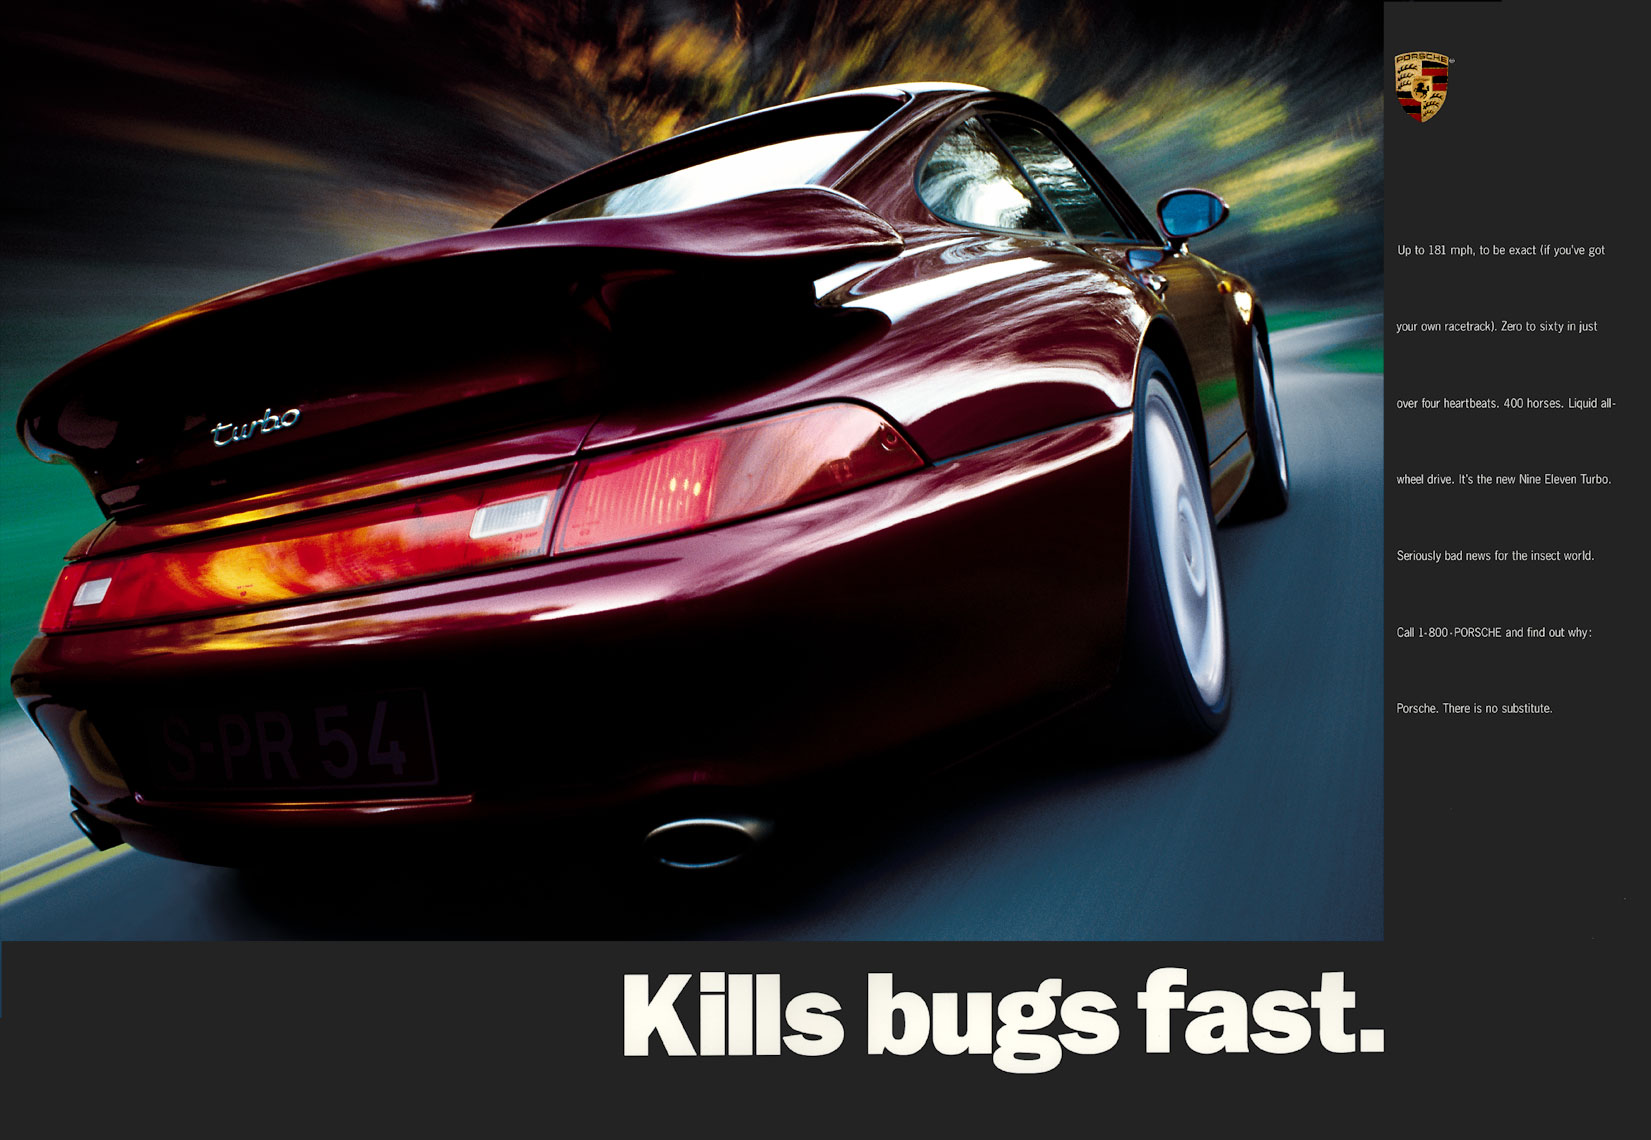 1-PORSCHE-KILLS-BUG-FAST-FINAL